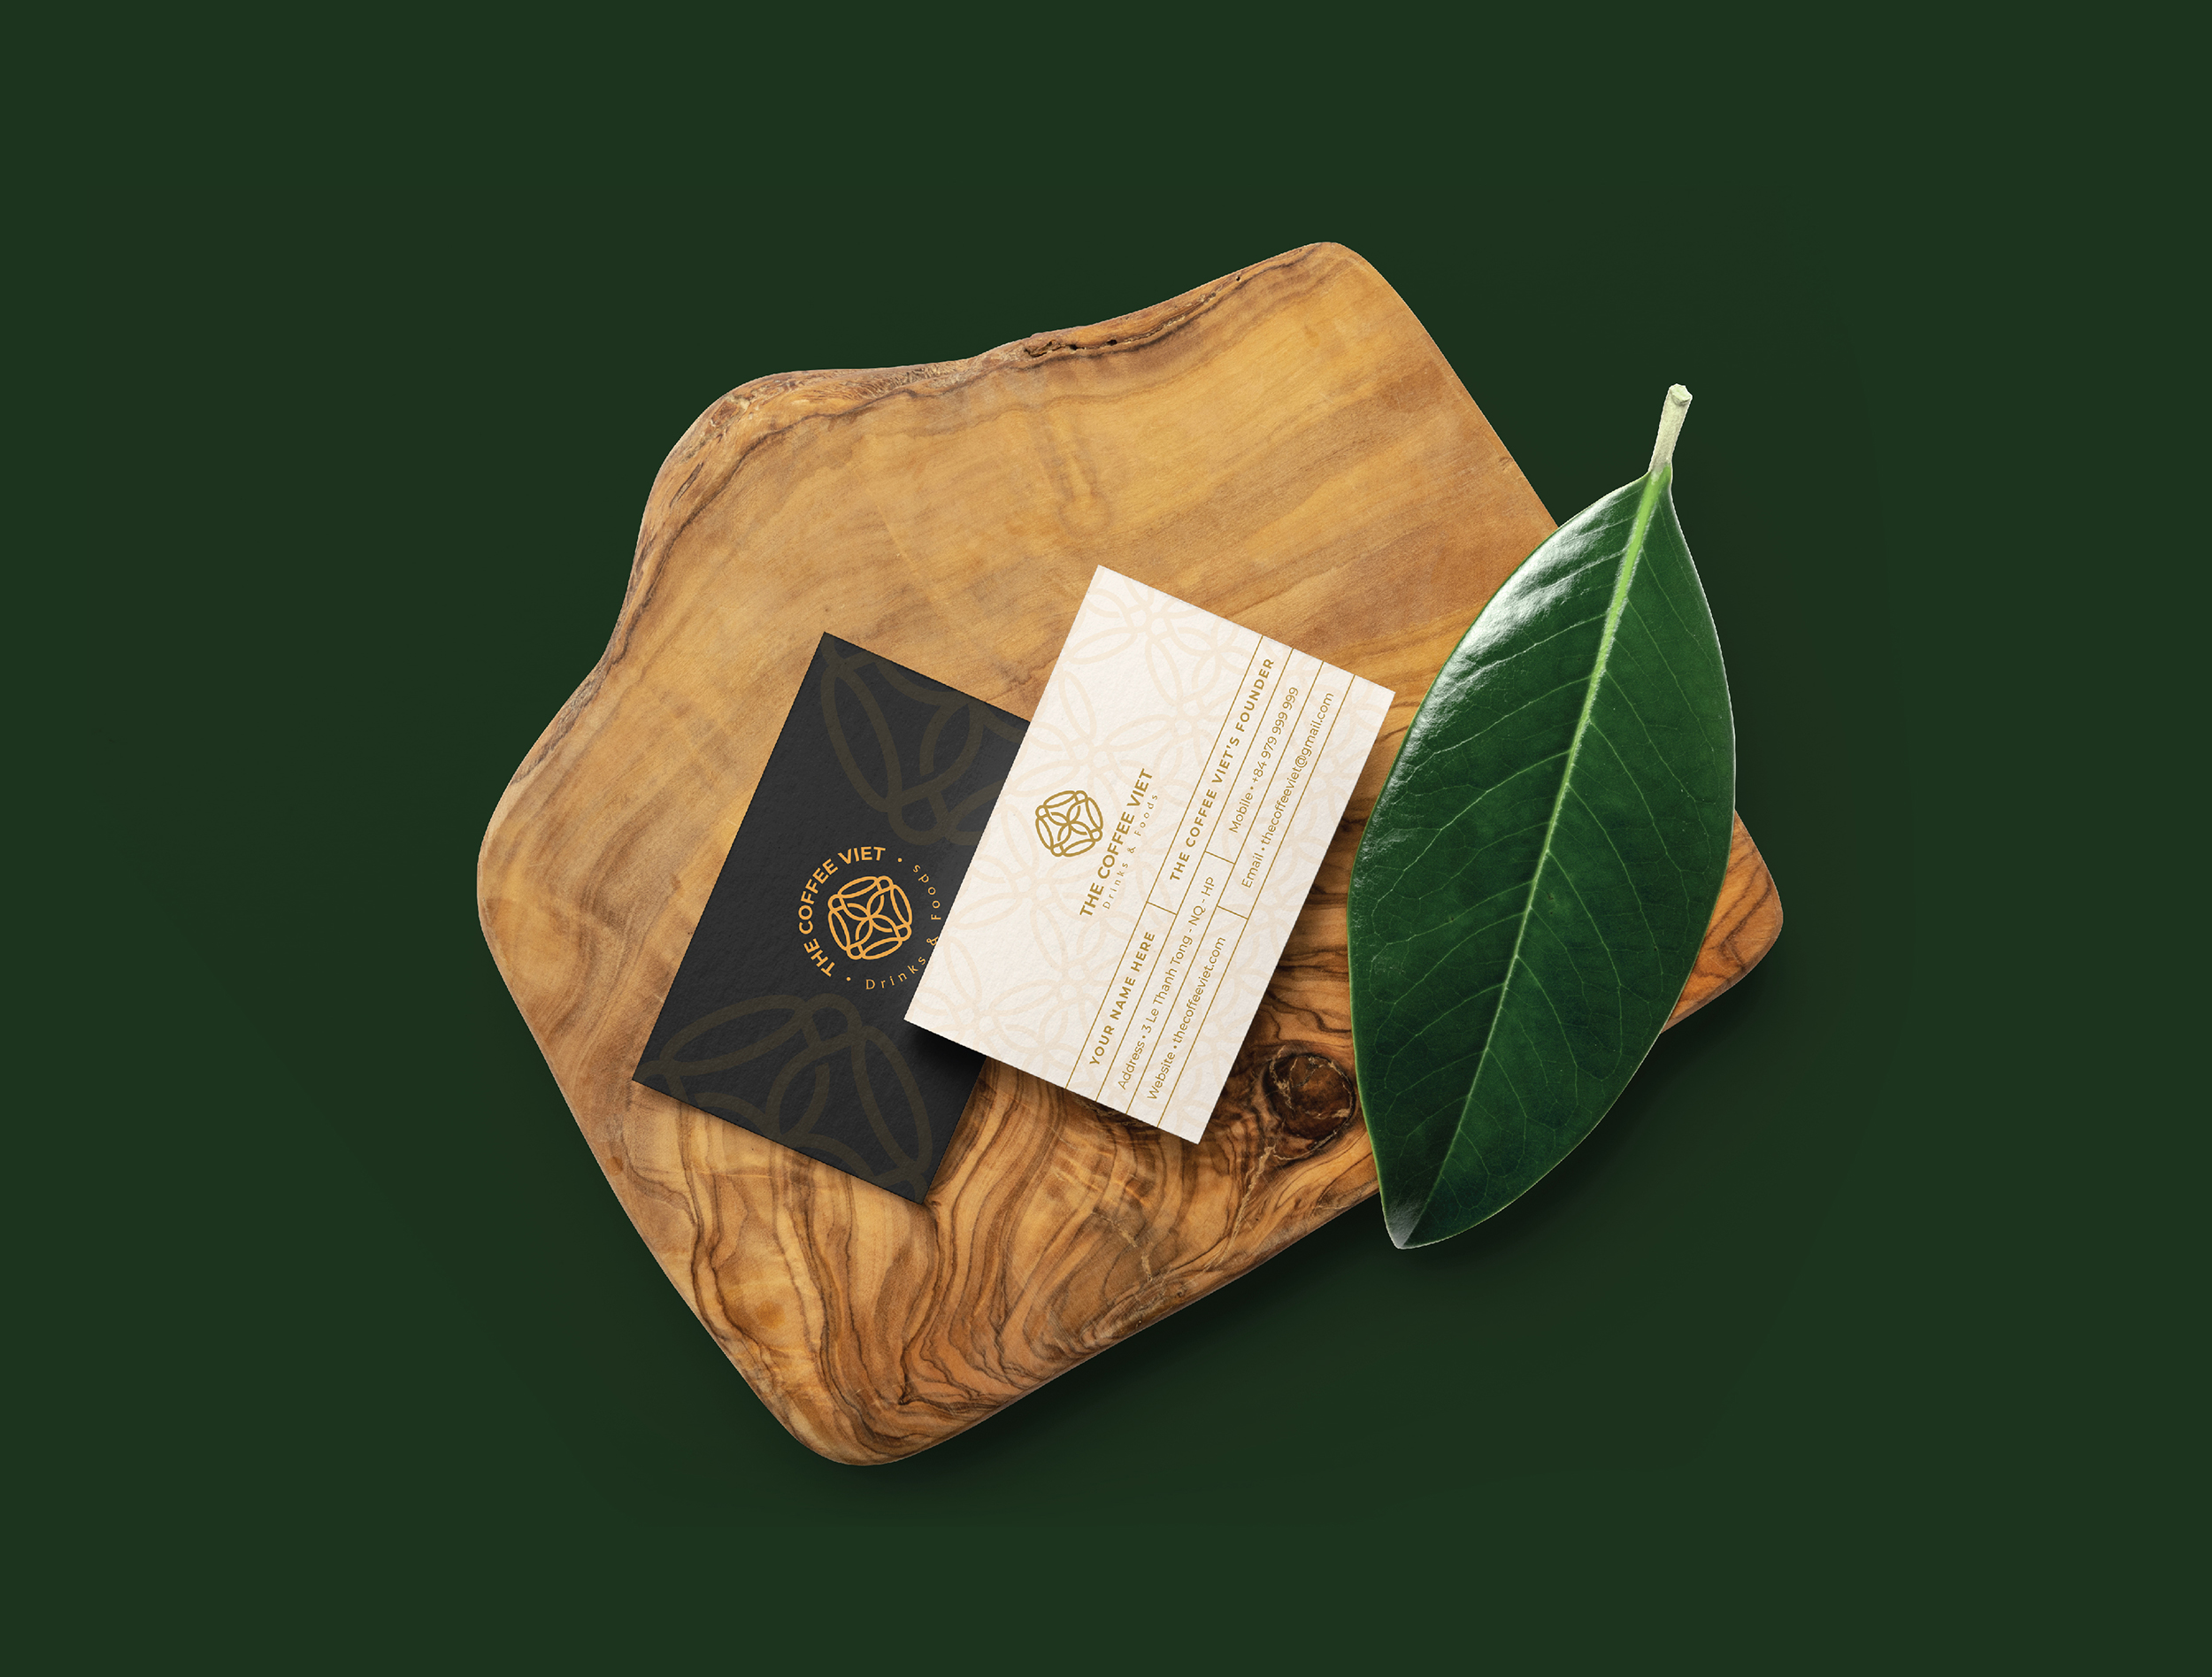 The Coffee Viet business card